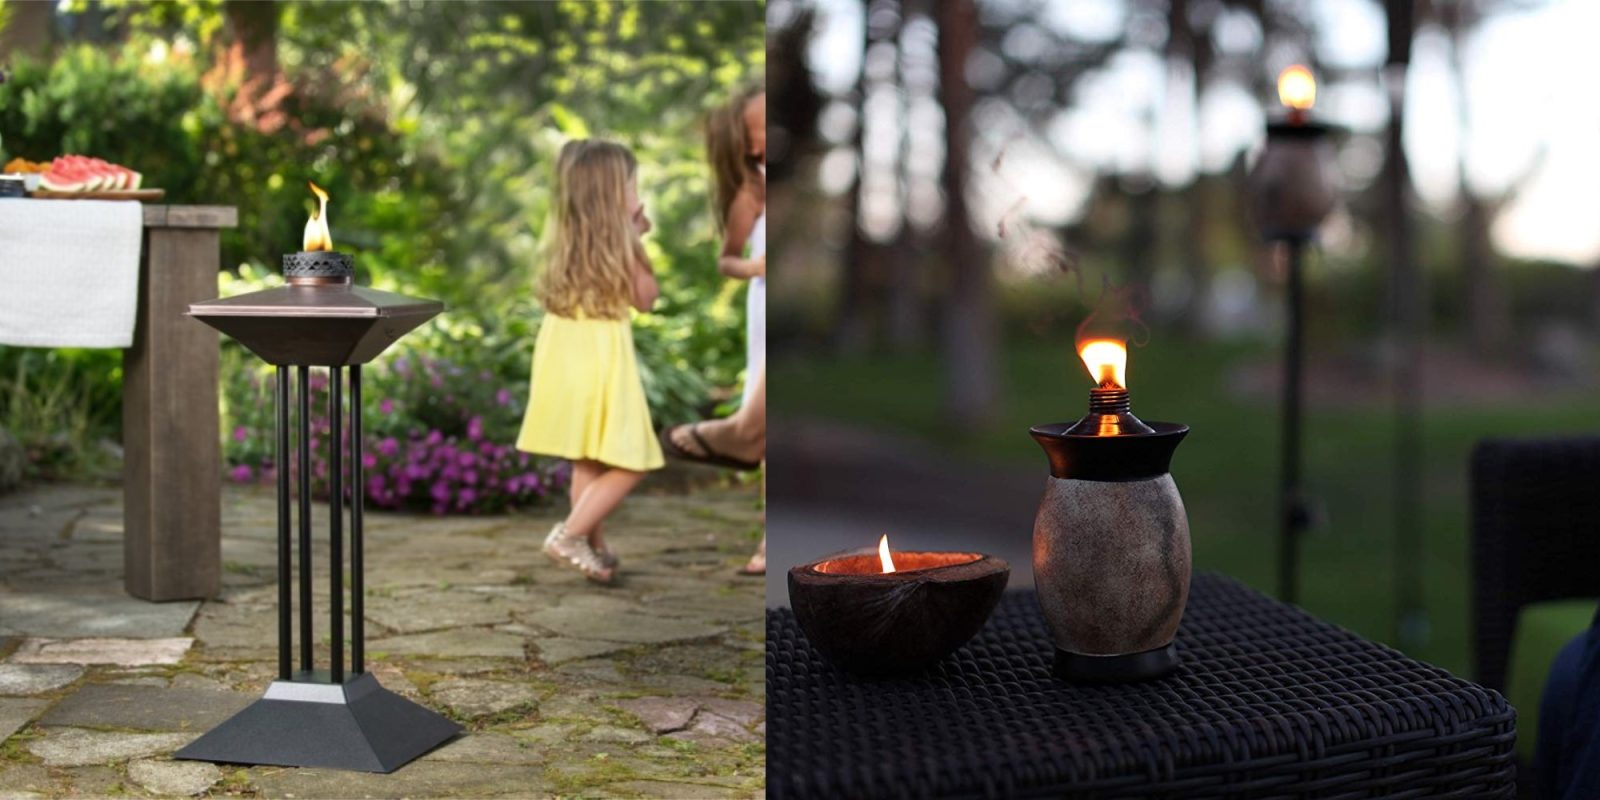 Outfit your patio with tiki torches at up to 25% off in Amazon's Gold Box